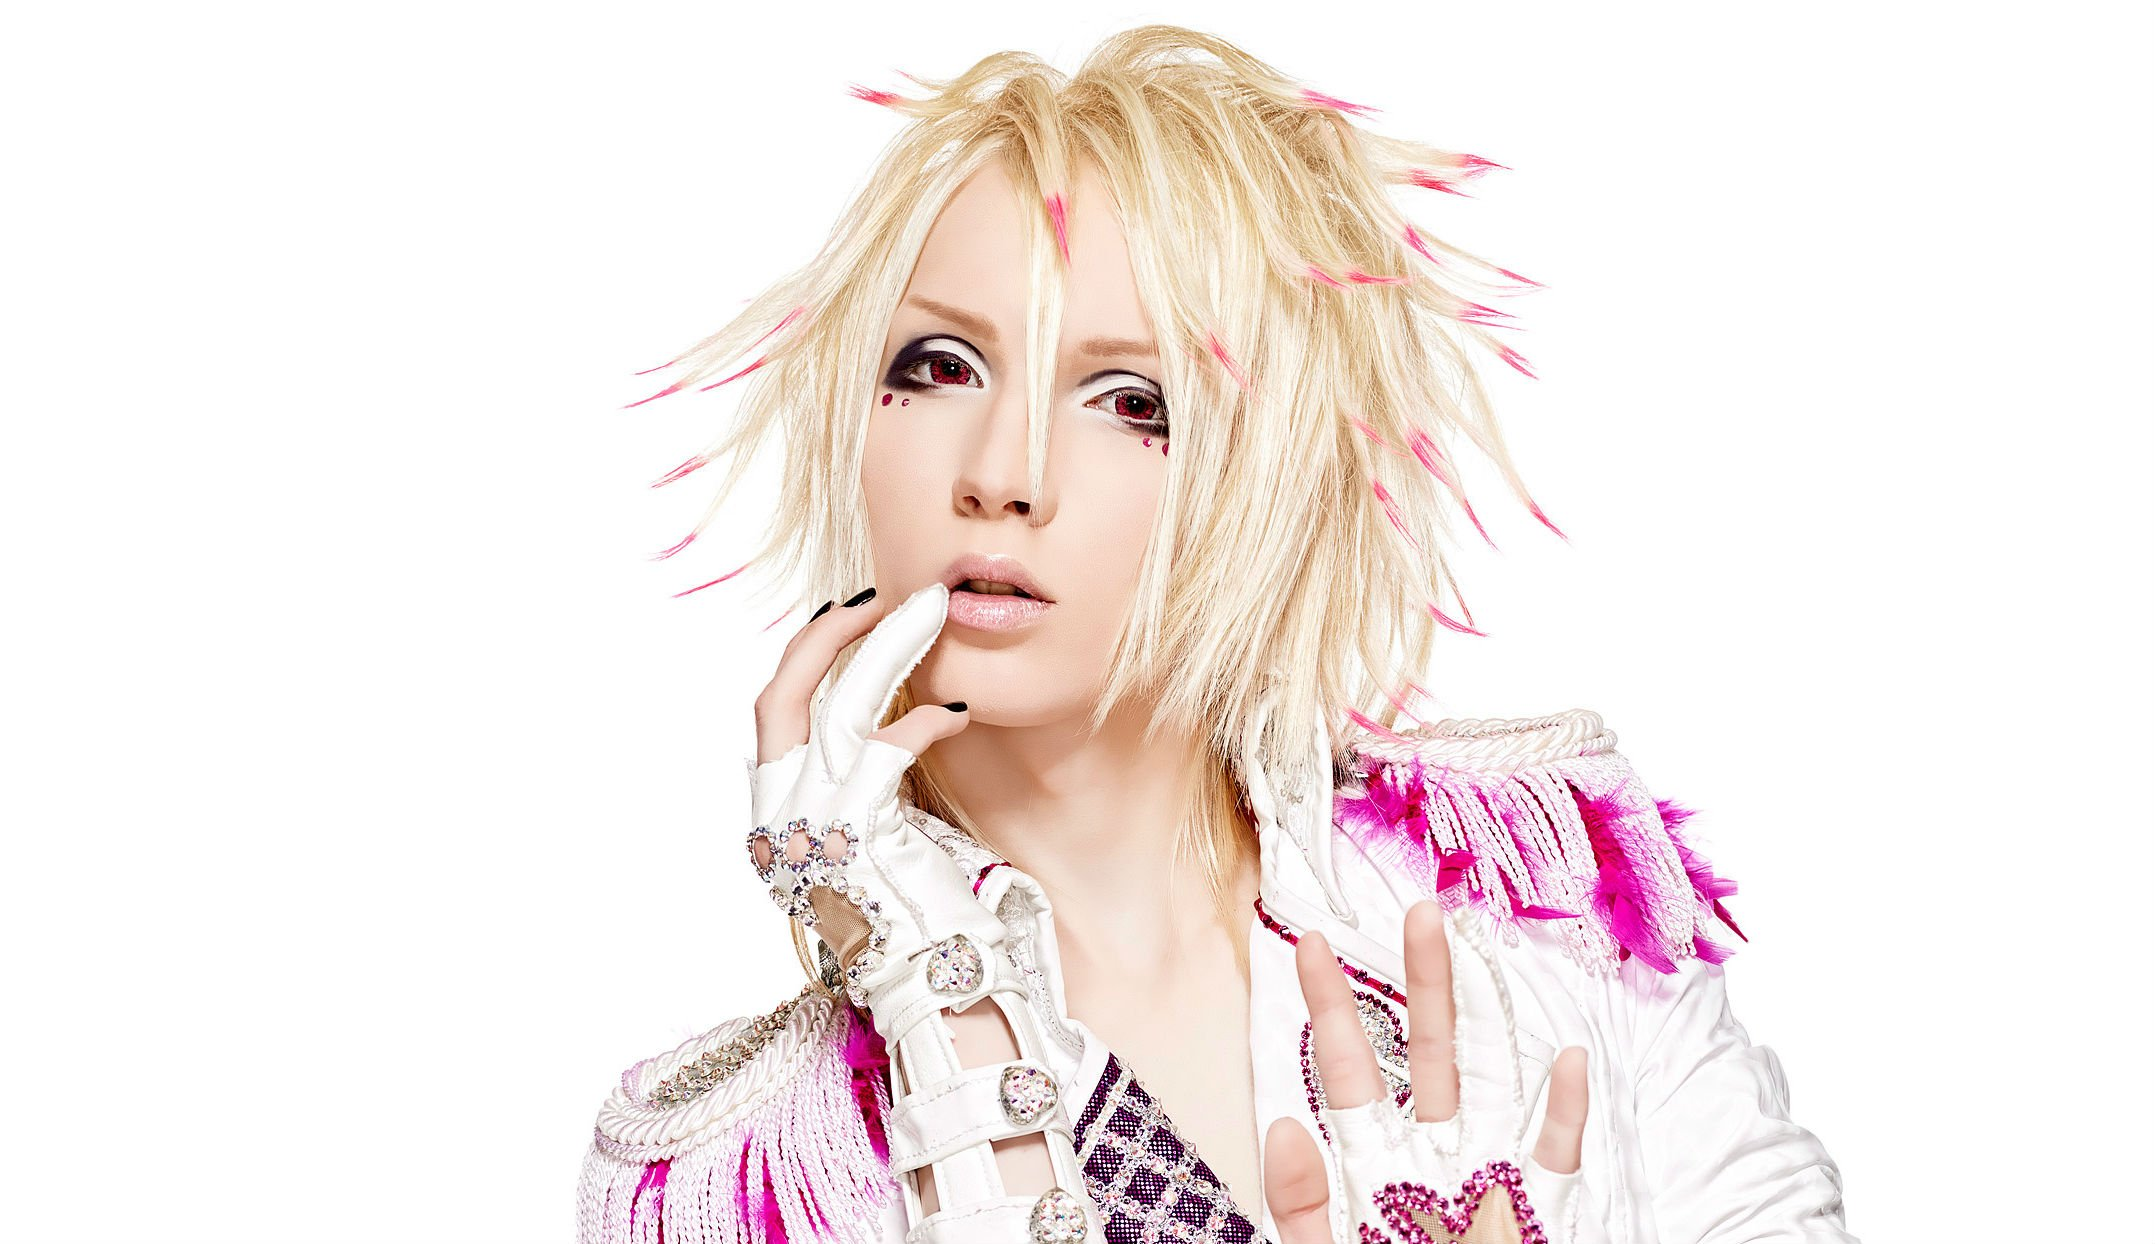 YOHIO Seremedy visual kei jrock j-rock rock pop jpop j-pop